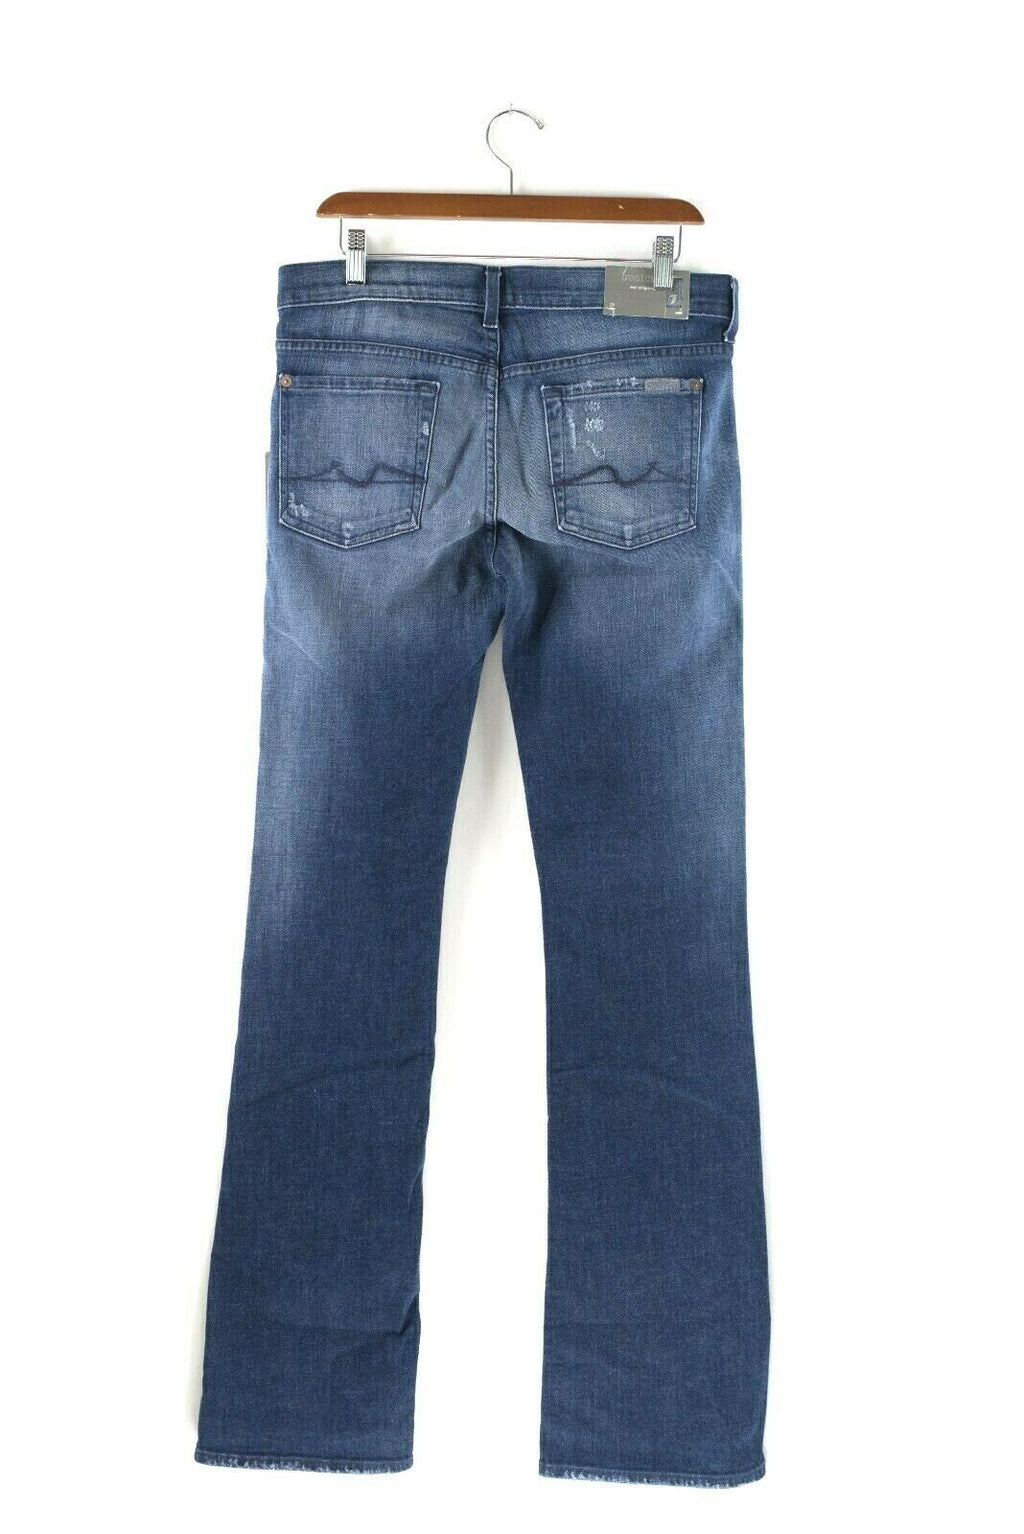 7 for All Mankind Womans Size 30 Blue Denim Distressed Bootcut Cotton Blend Jean